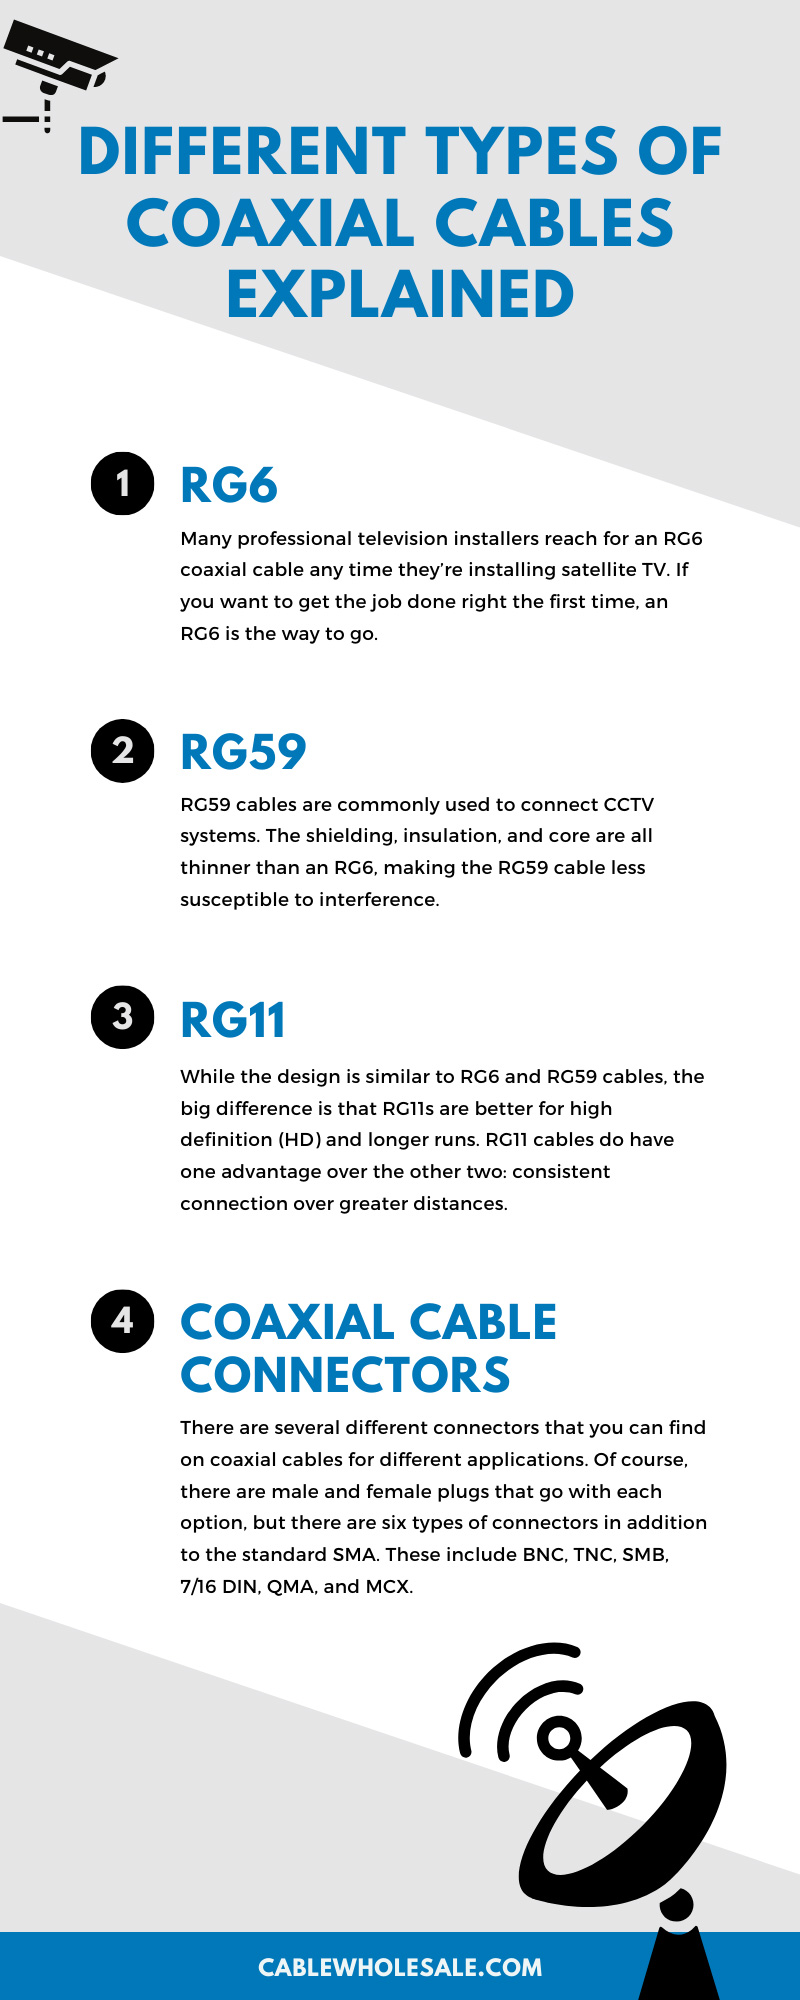 Coaxial Cables Explained